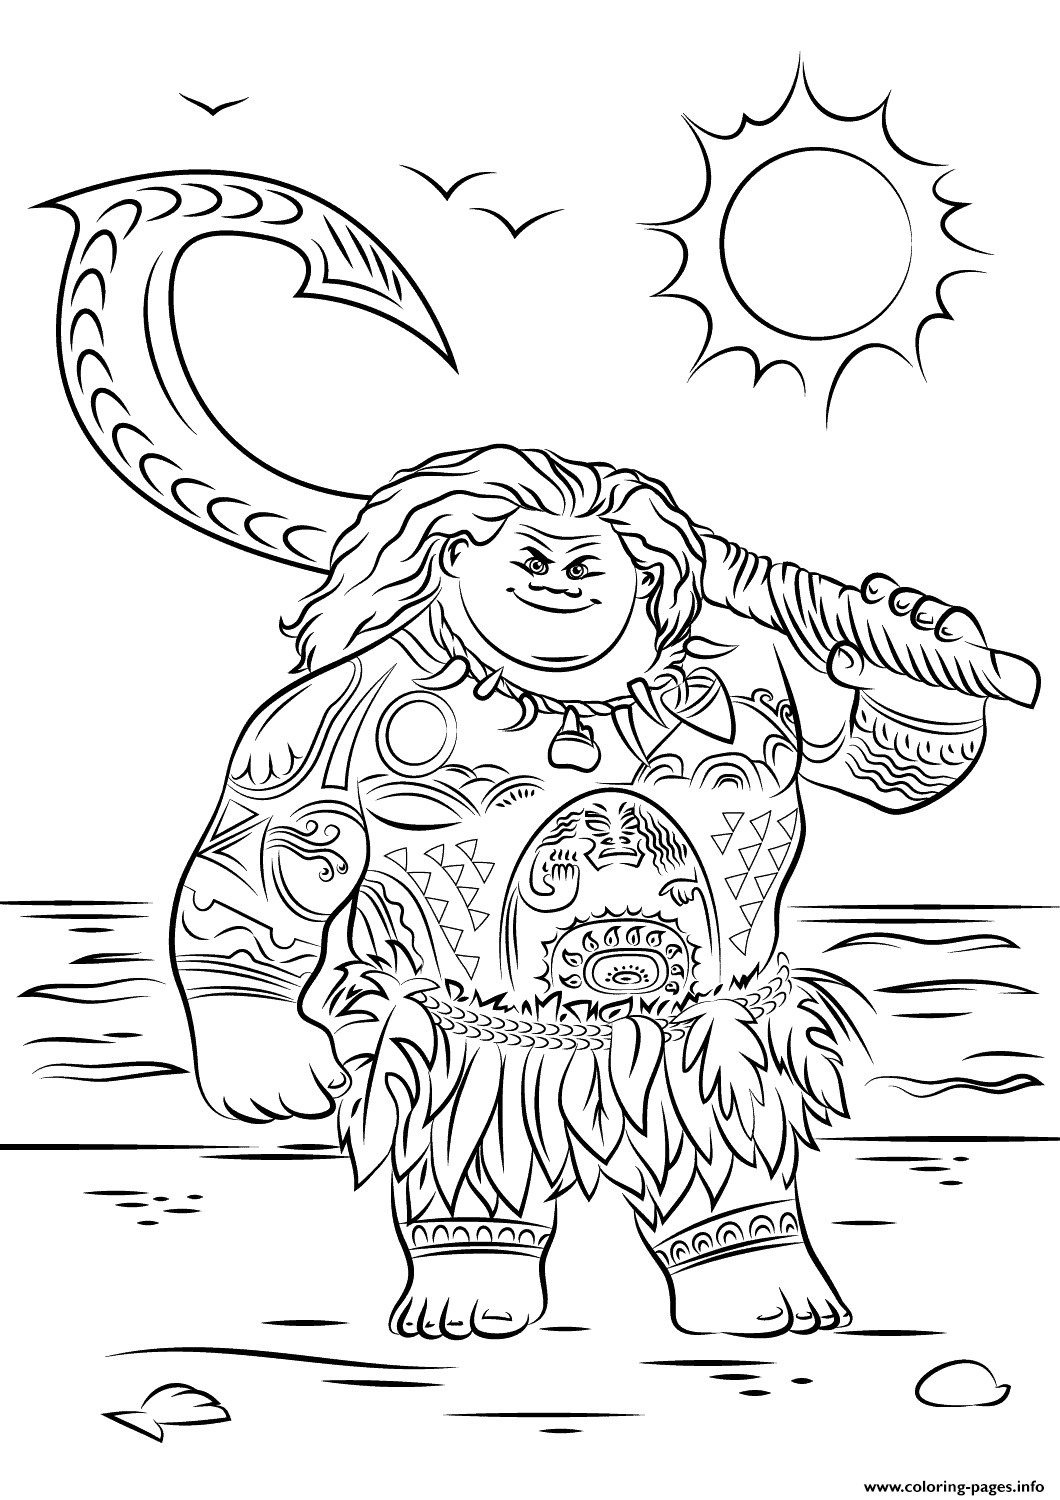 Moana Coloring Pages Pdf  Maui From Moana Disney Coloring Pages Printable